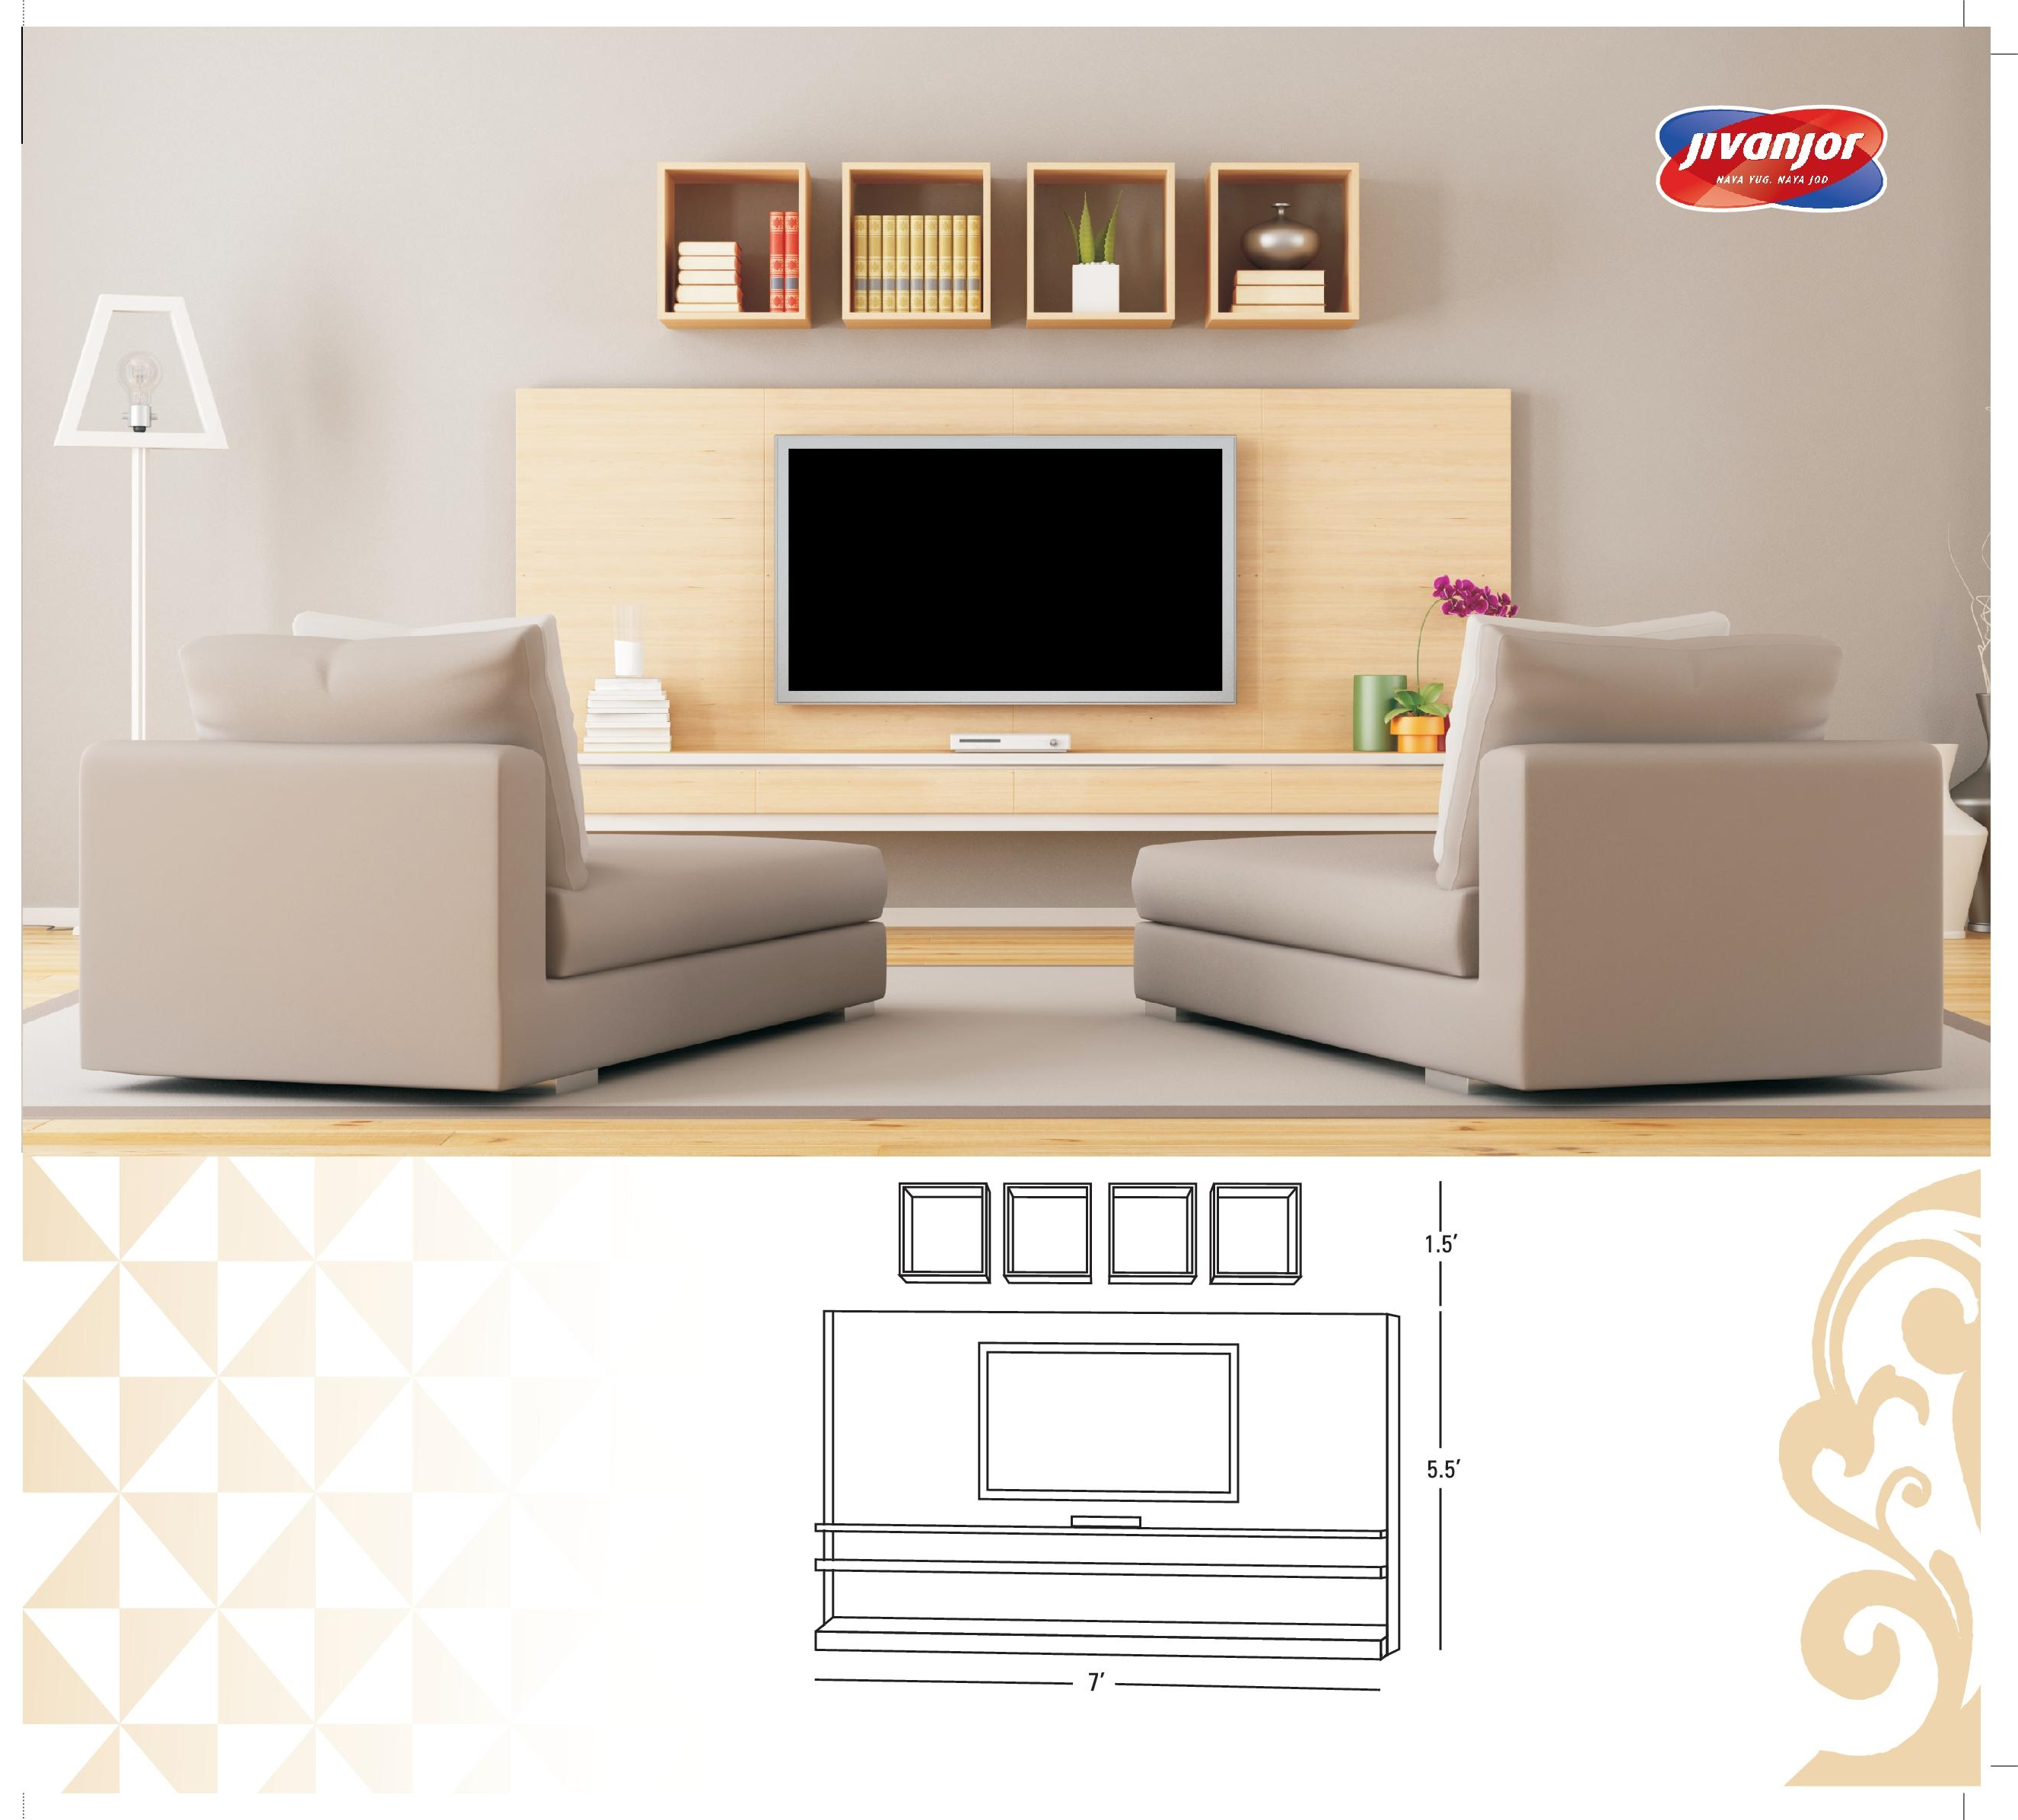 Modern tv cabinet design ideas from jubilant jacpl - Tv cabinet design ...